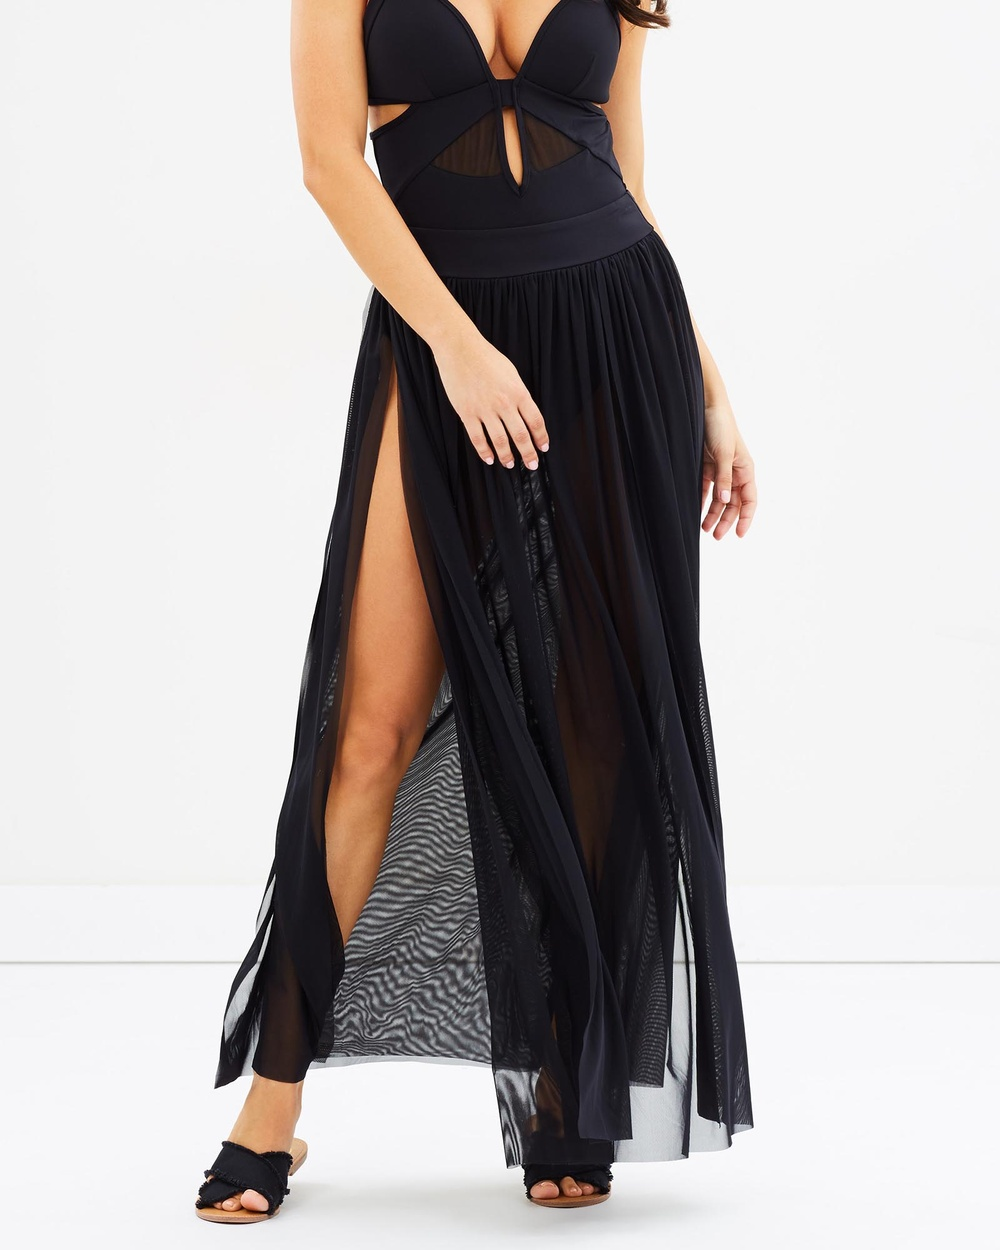 JETS Banded Maxi Skirt Swimwear Black Banded Maxi Skirt